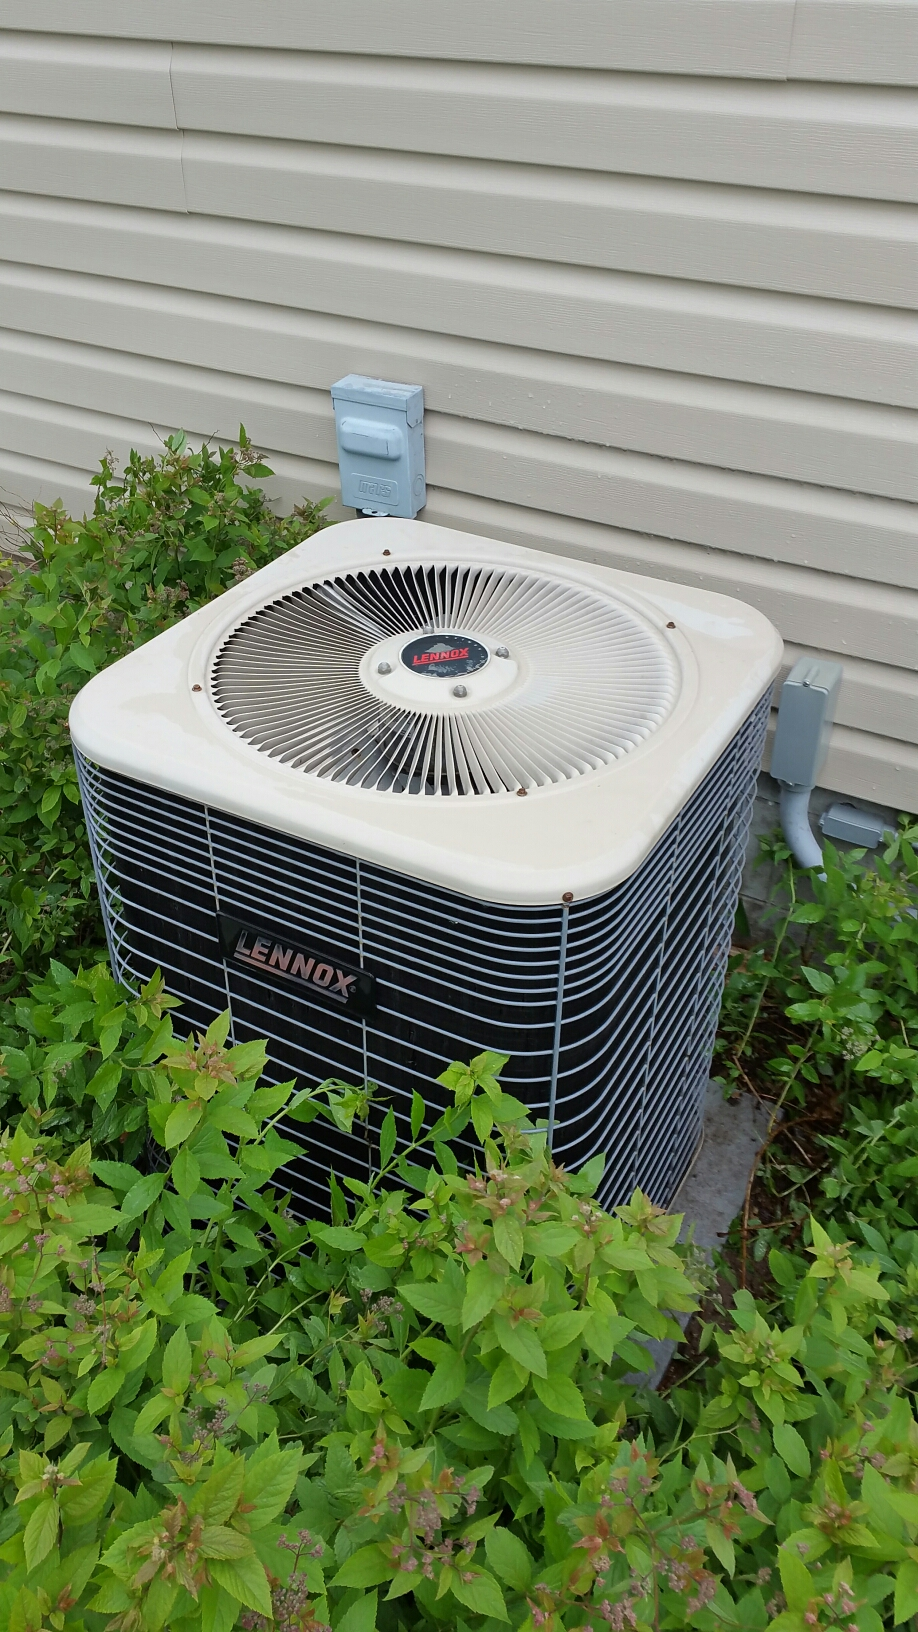 Culver, IN - Lennox air conditioner tuneup service